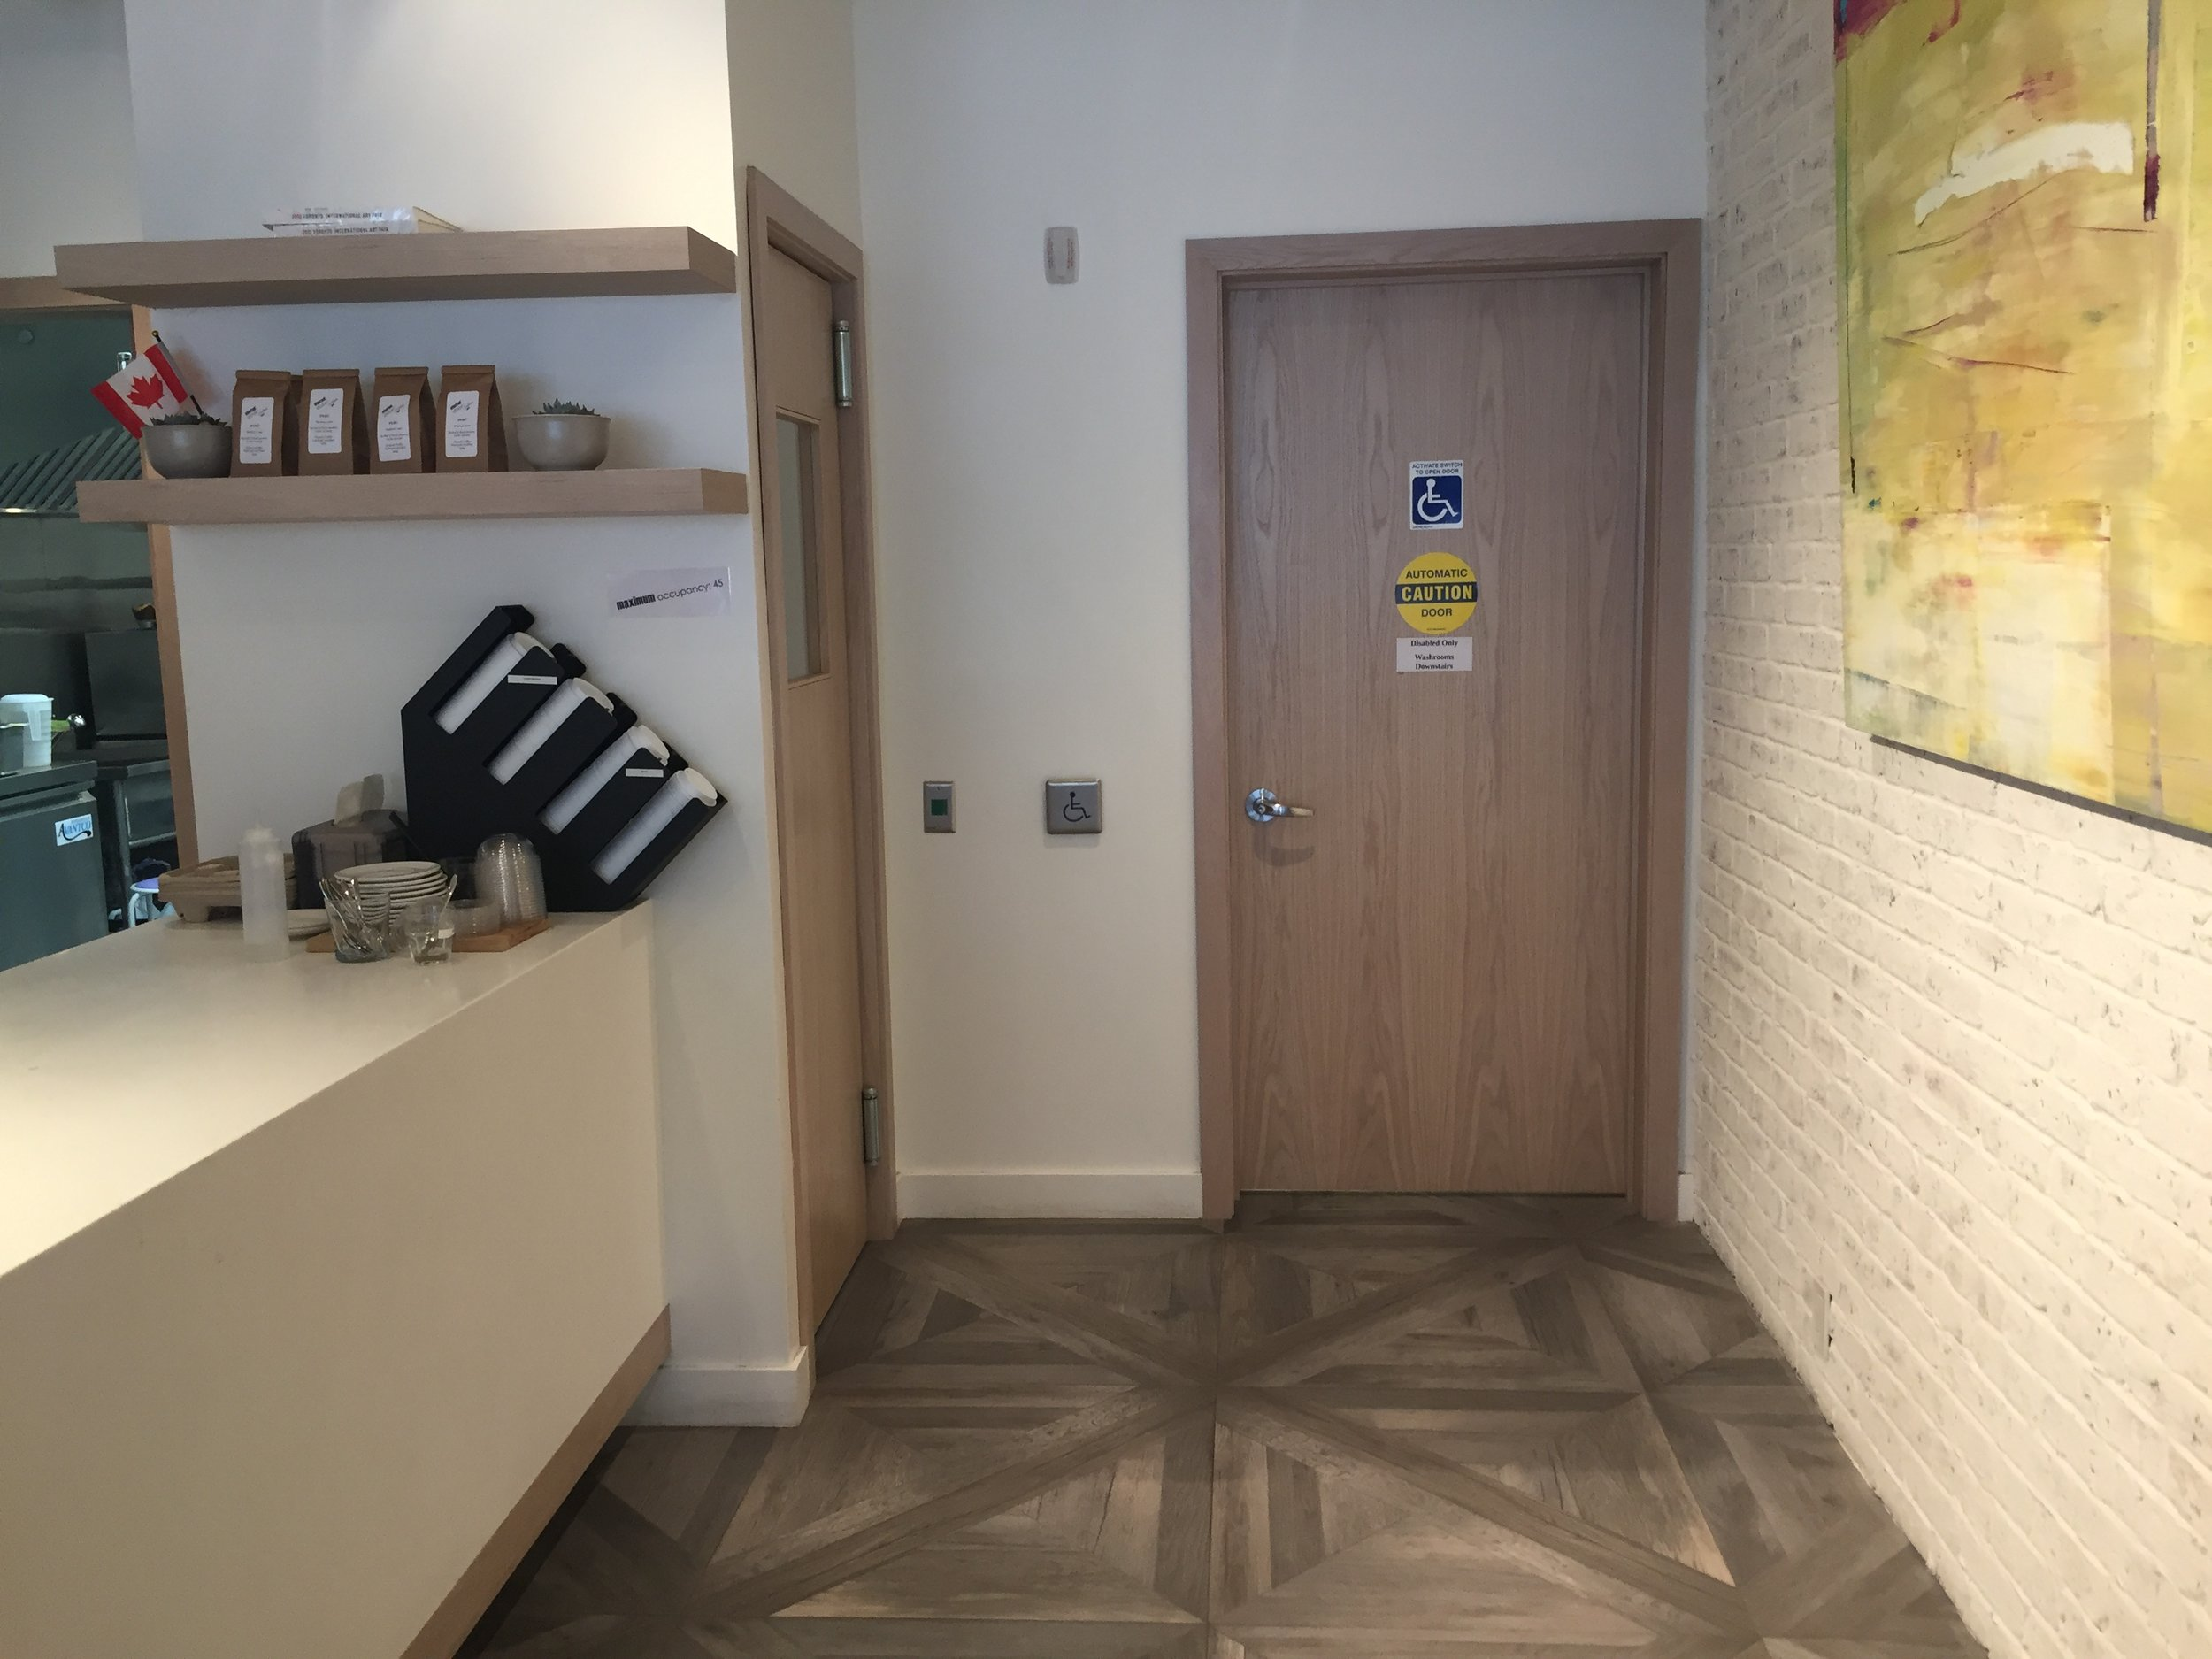 Picture of unobstructed pathway to the accessible washroom